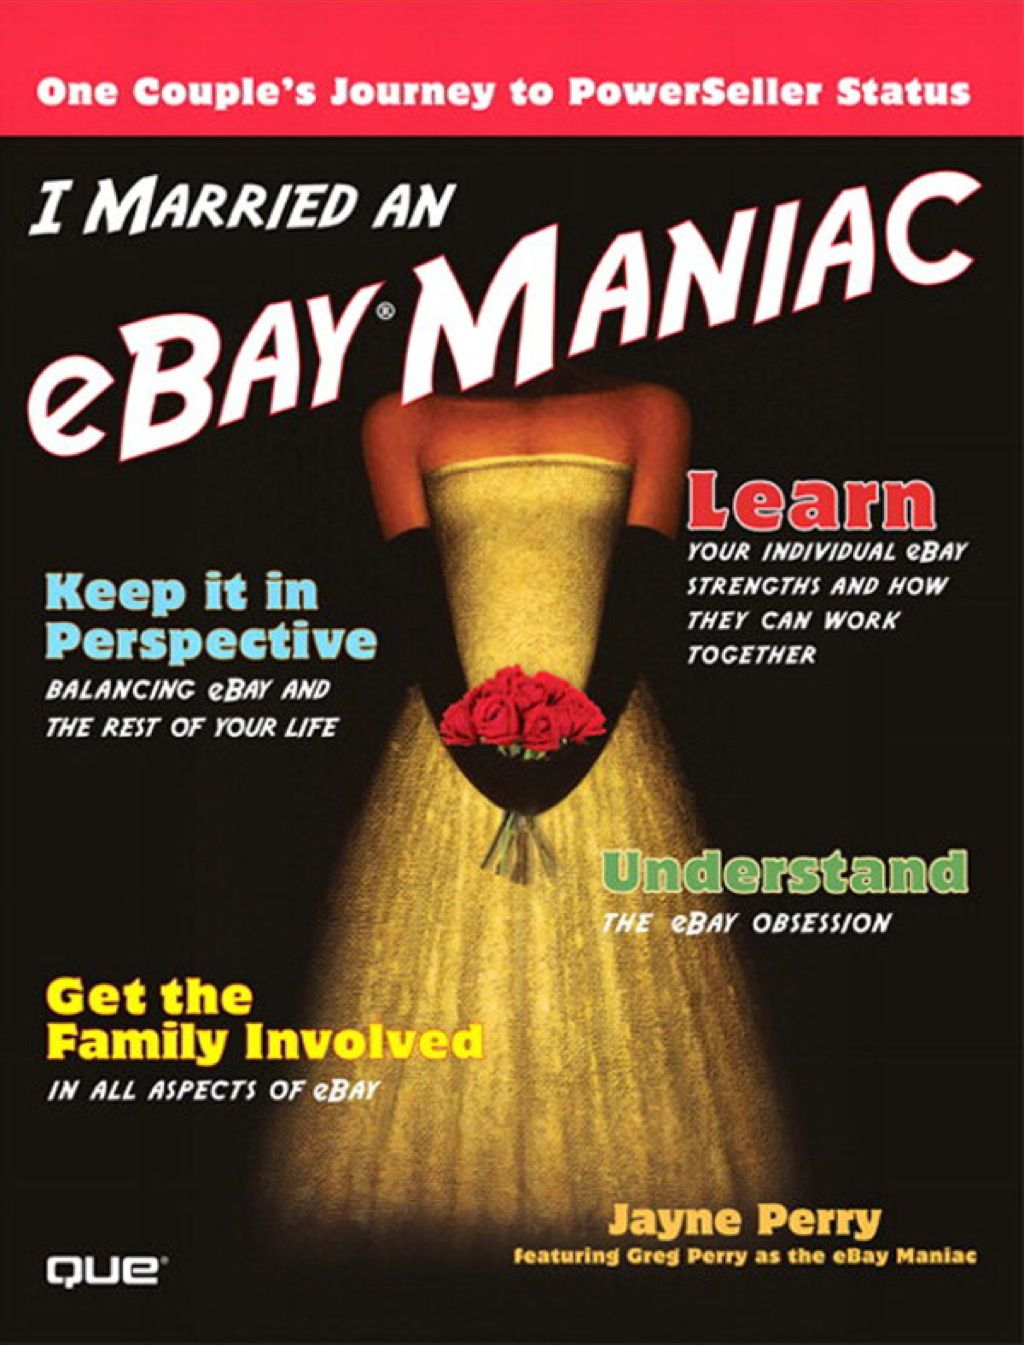 I Married an eBay Maniac (eBook) in 2019   Products   Kindle